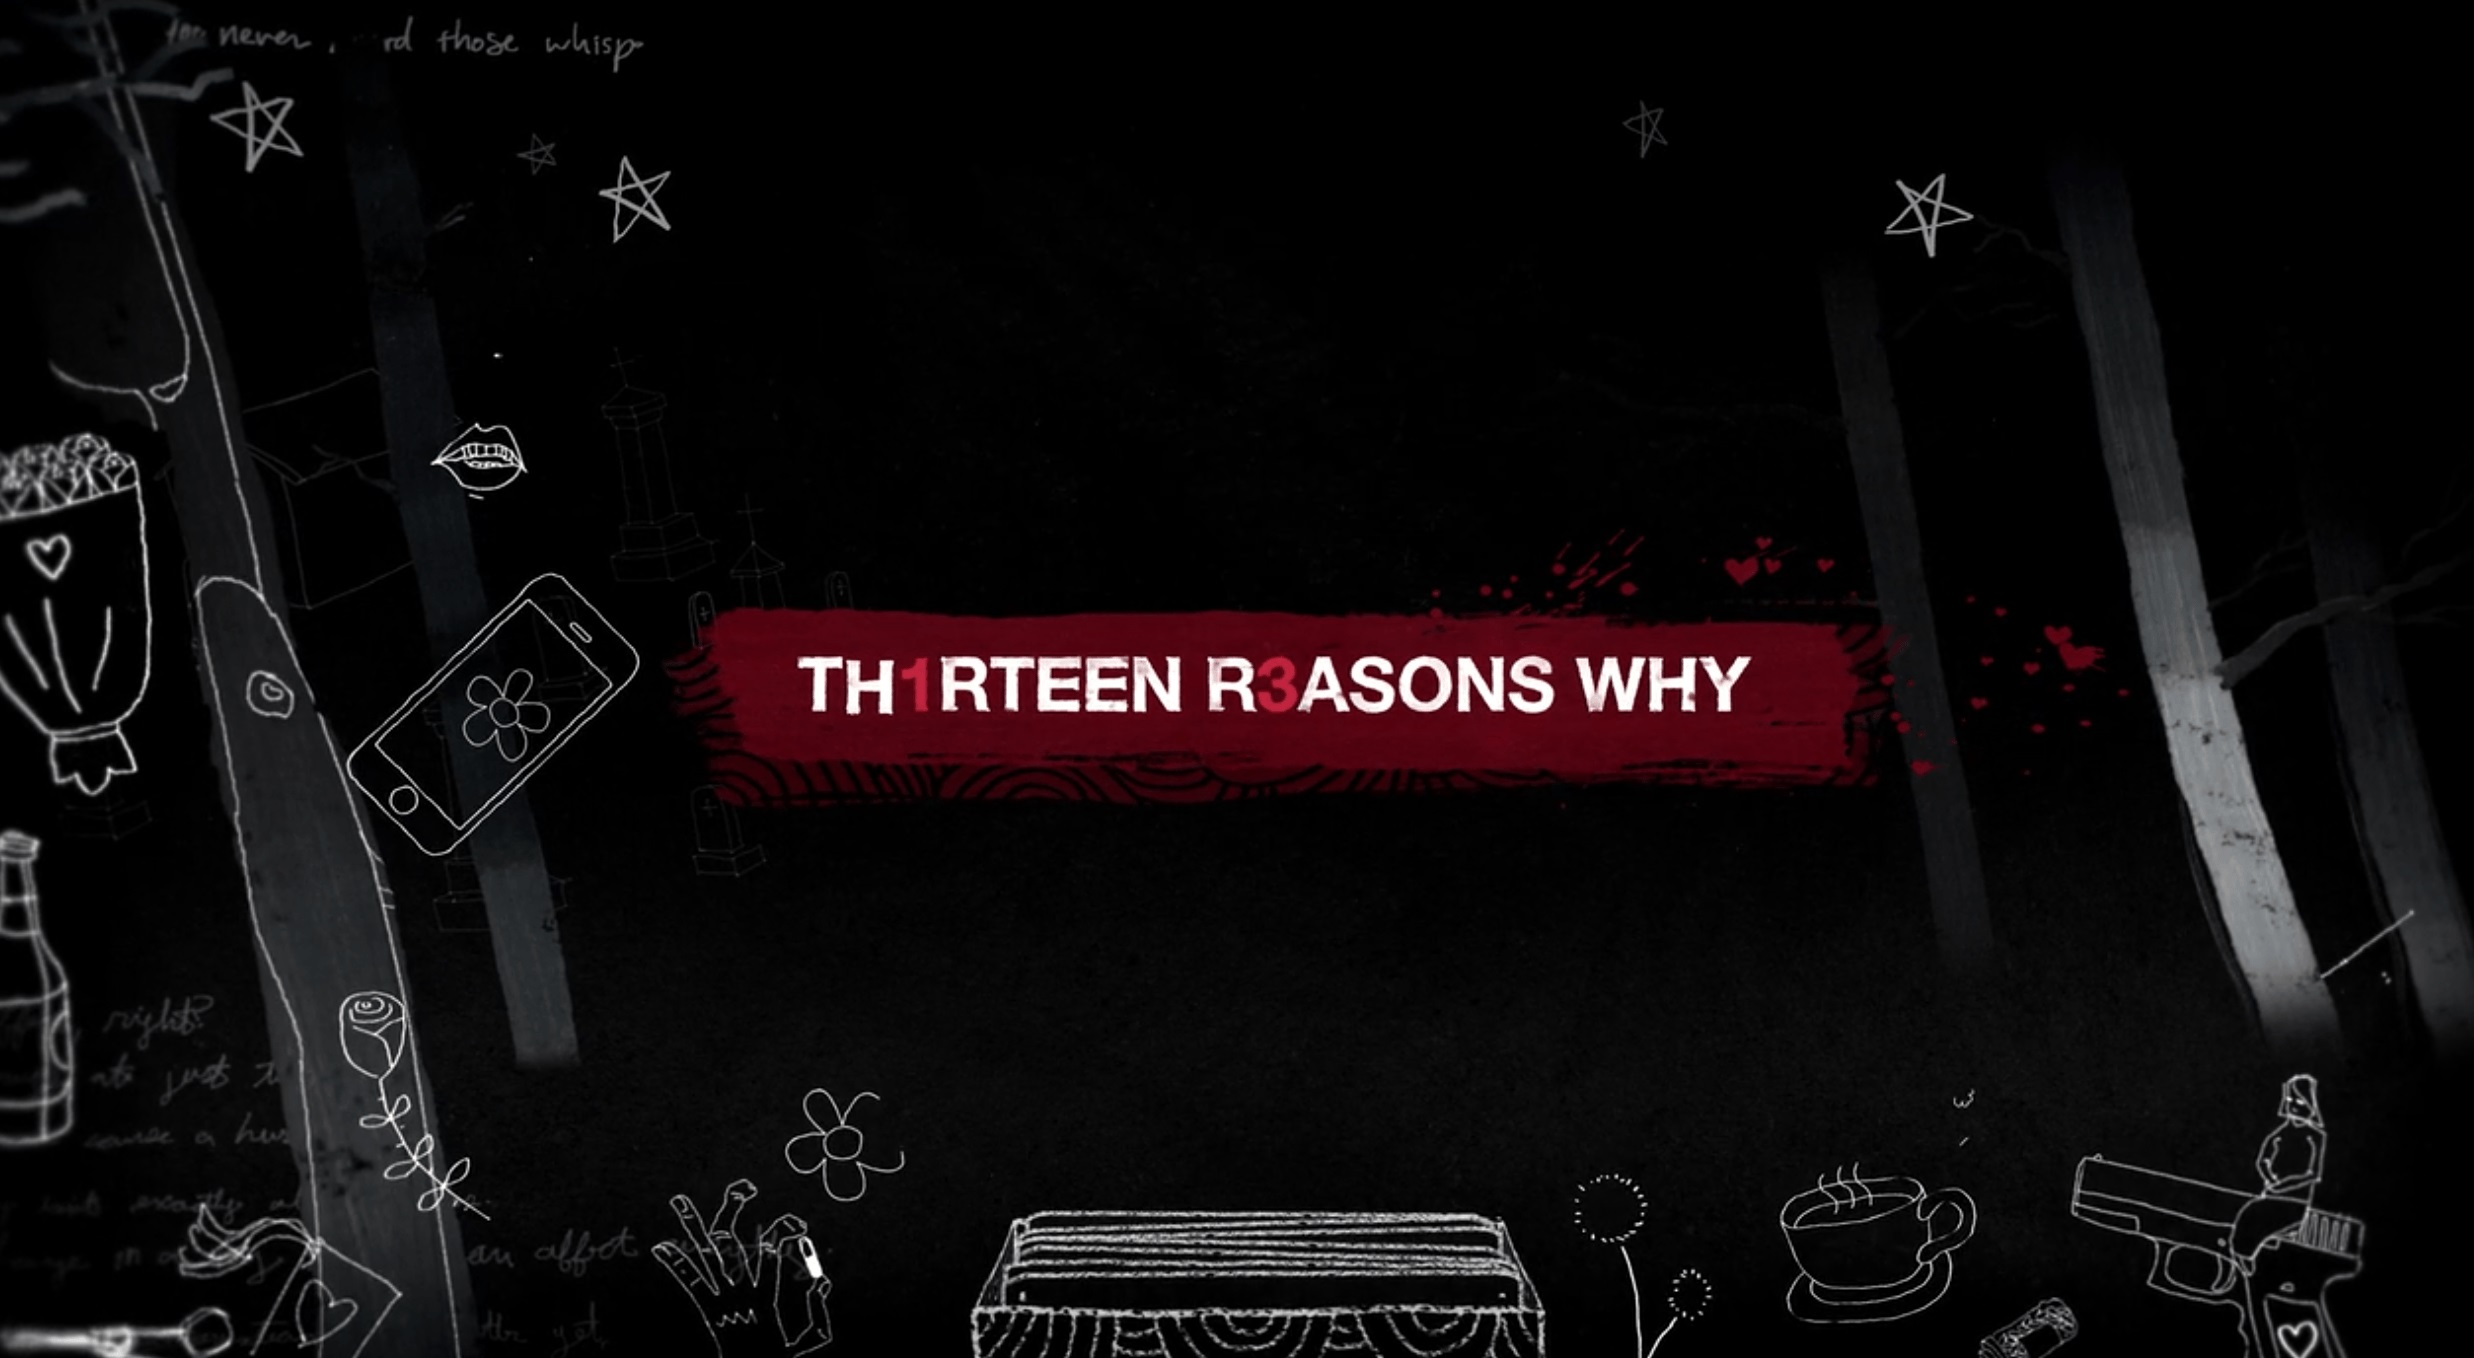 13 Reasons Why background 21